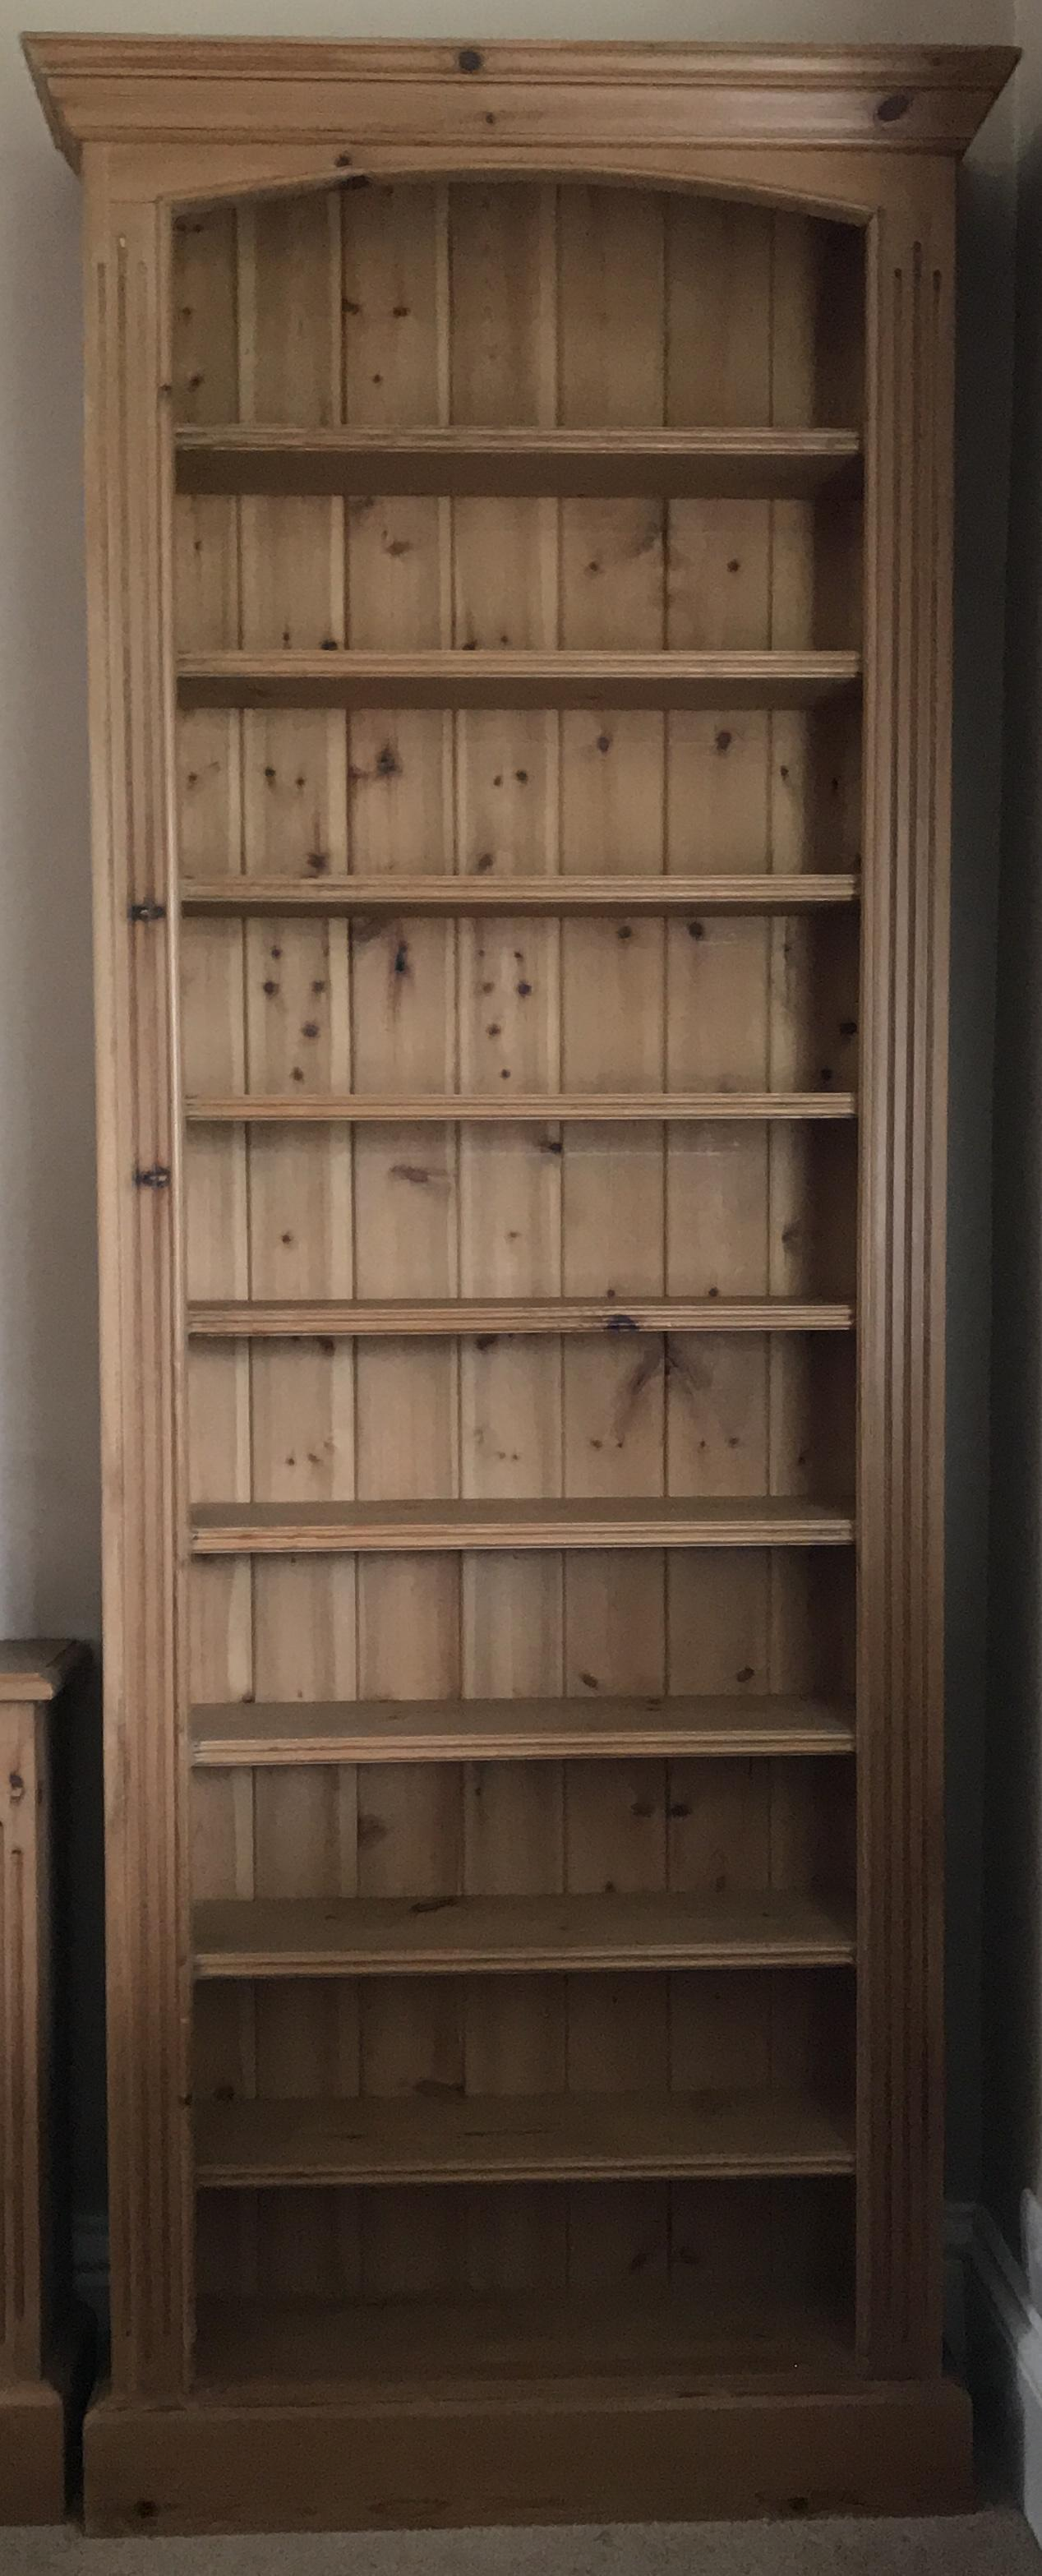 Traditional-style solid pine CD shelves